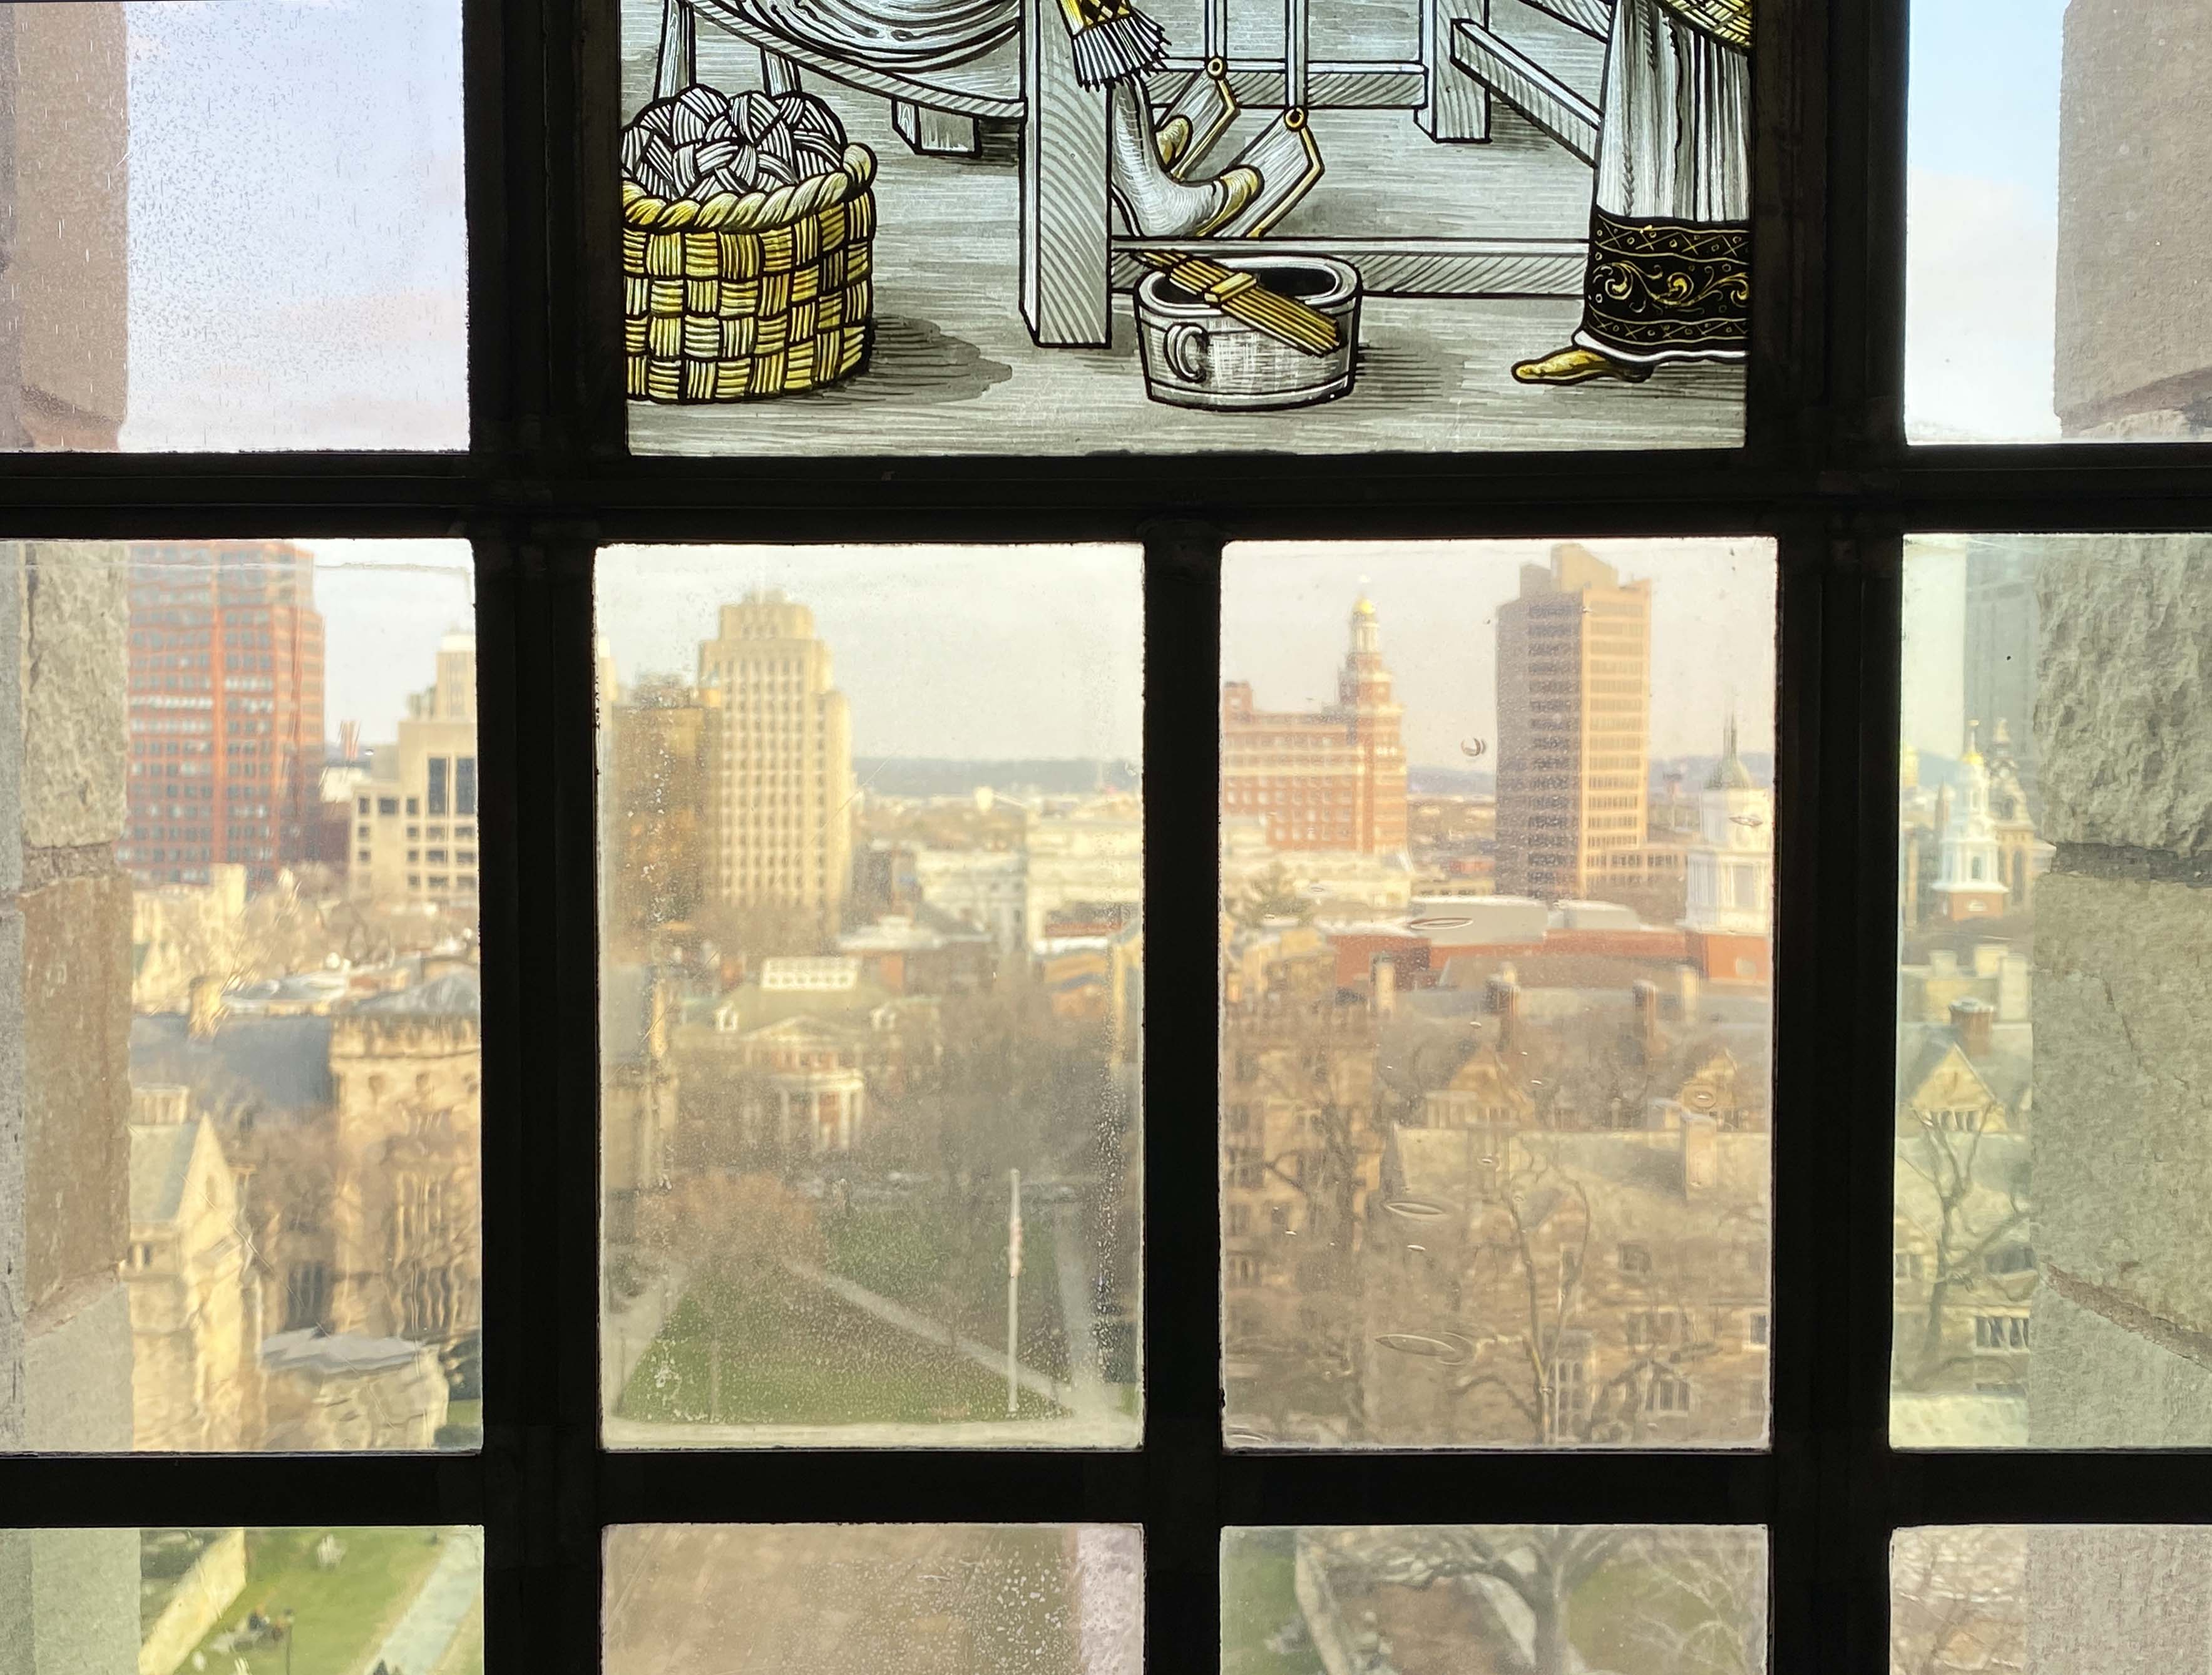 View of Yale campus through stained glass window